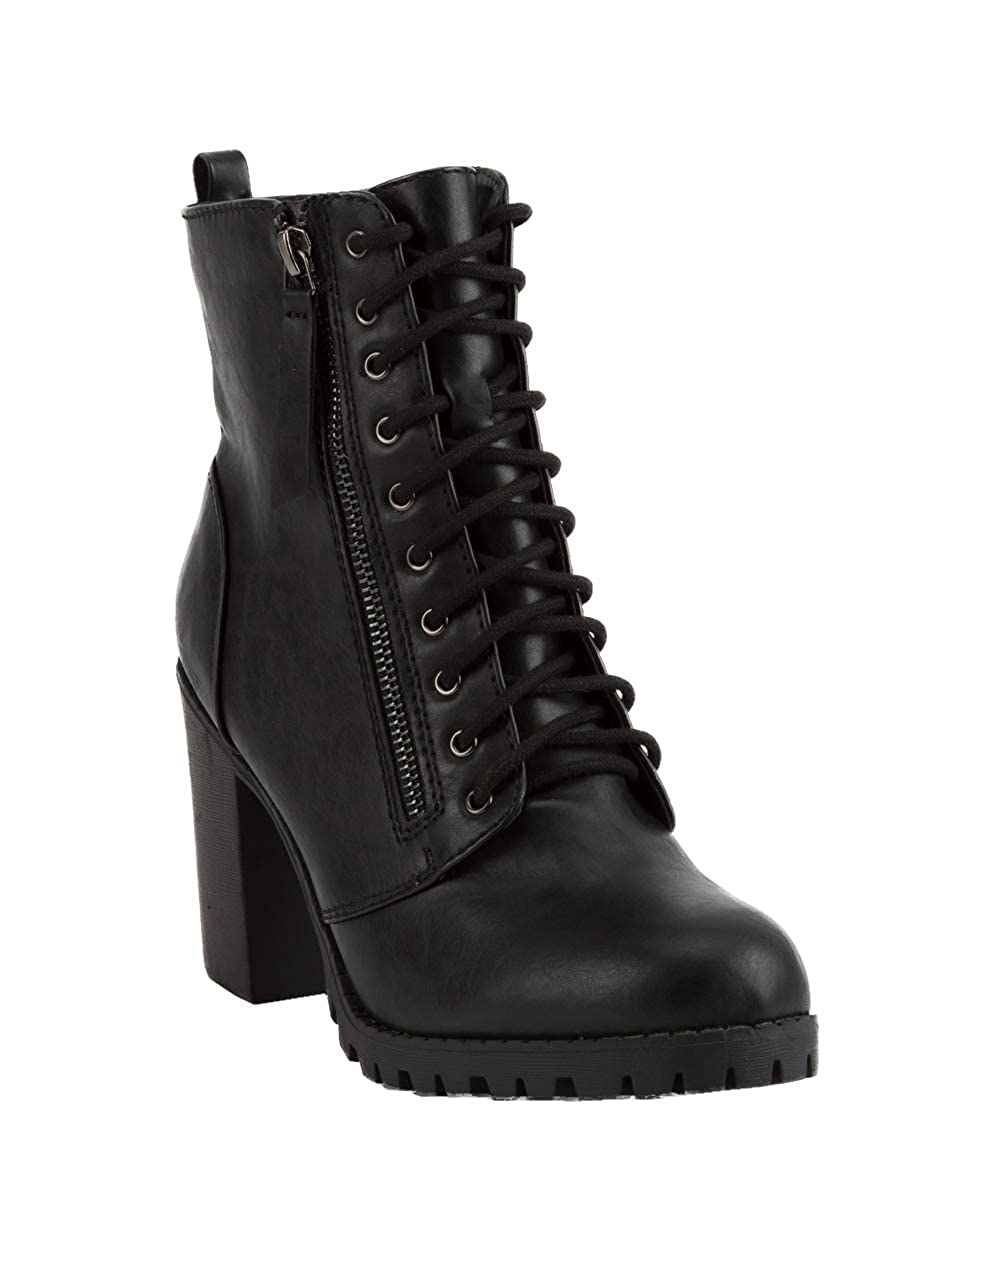 33b05ac724c Amazon.com | SODA Malia Black Heeled Combat Boots | Shoes